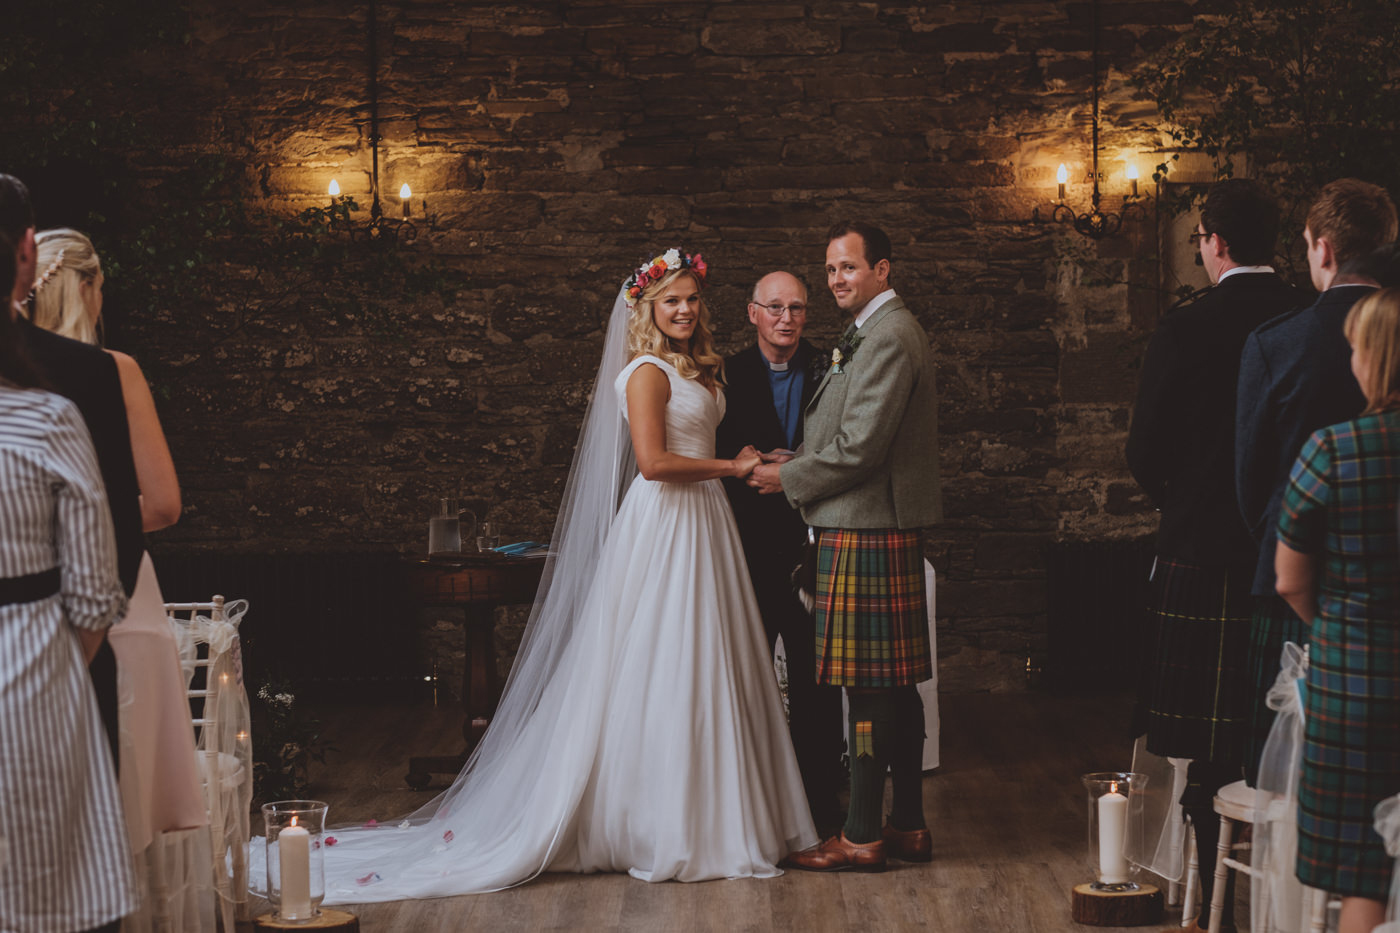 Wedding at Ackergill Tower